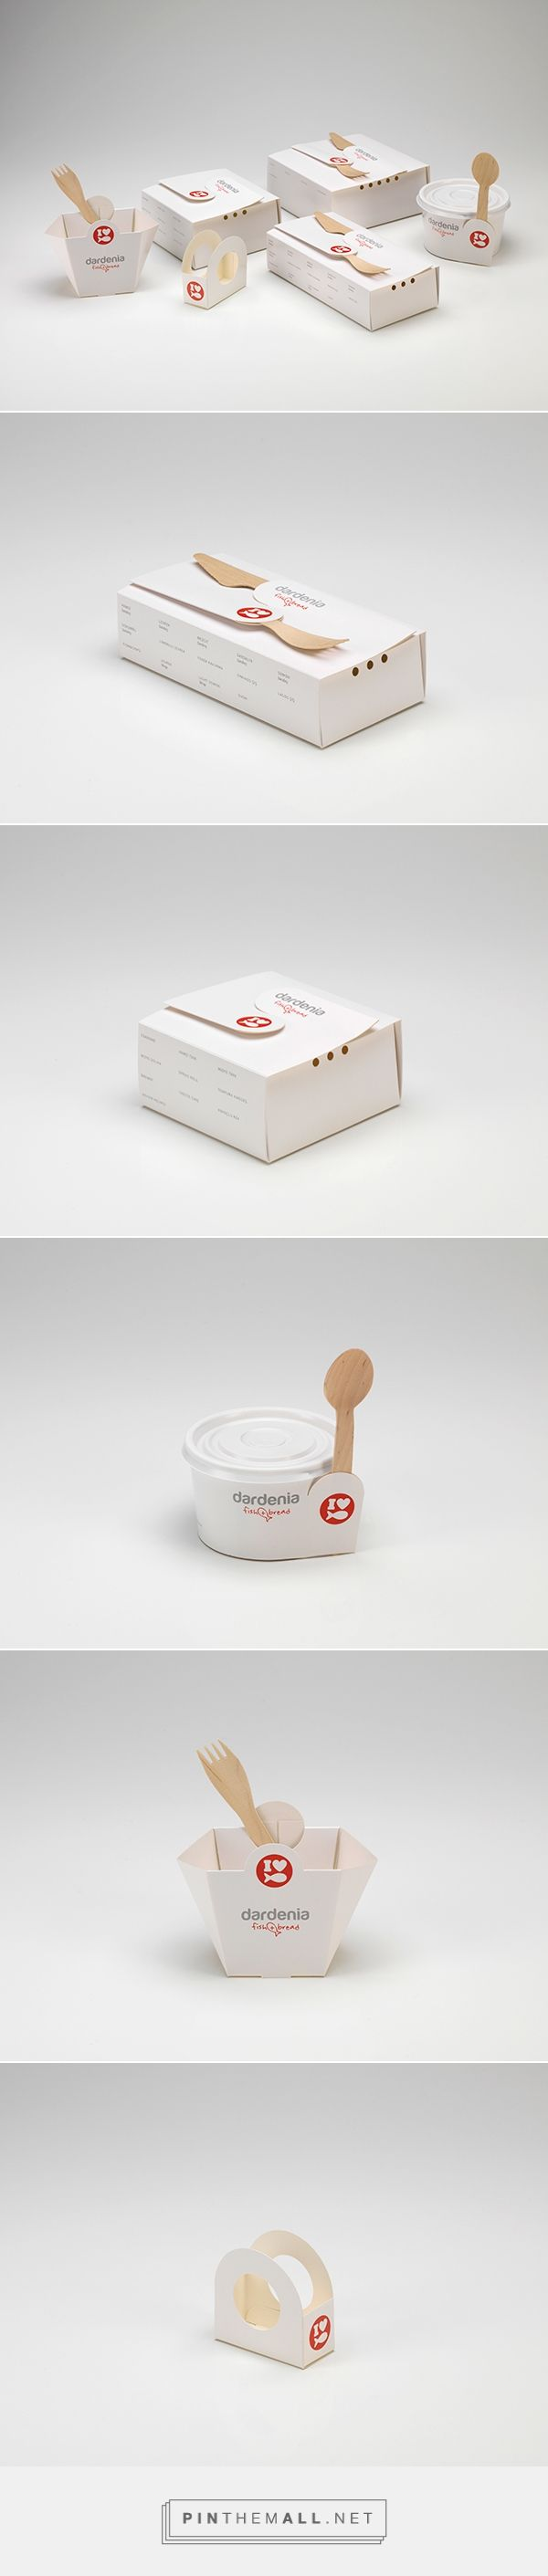 DARDENIA food boxes on Behance by Ypsilon Tasarim